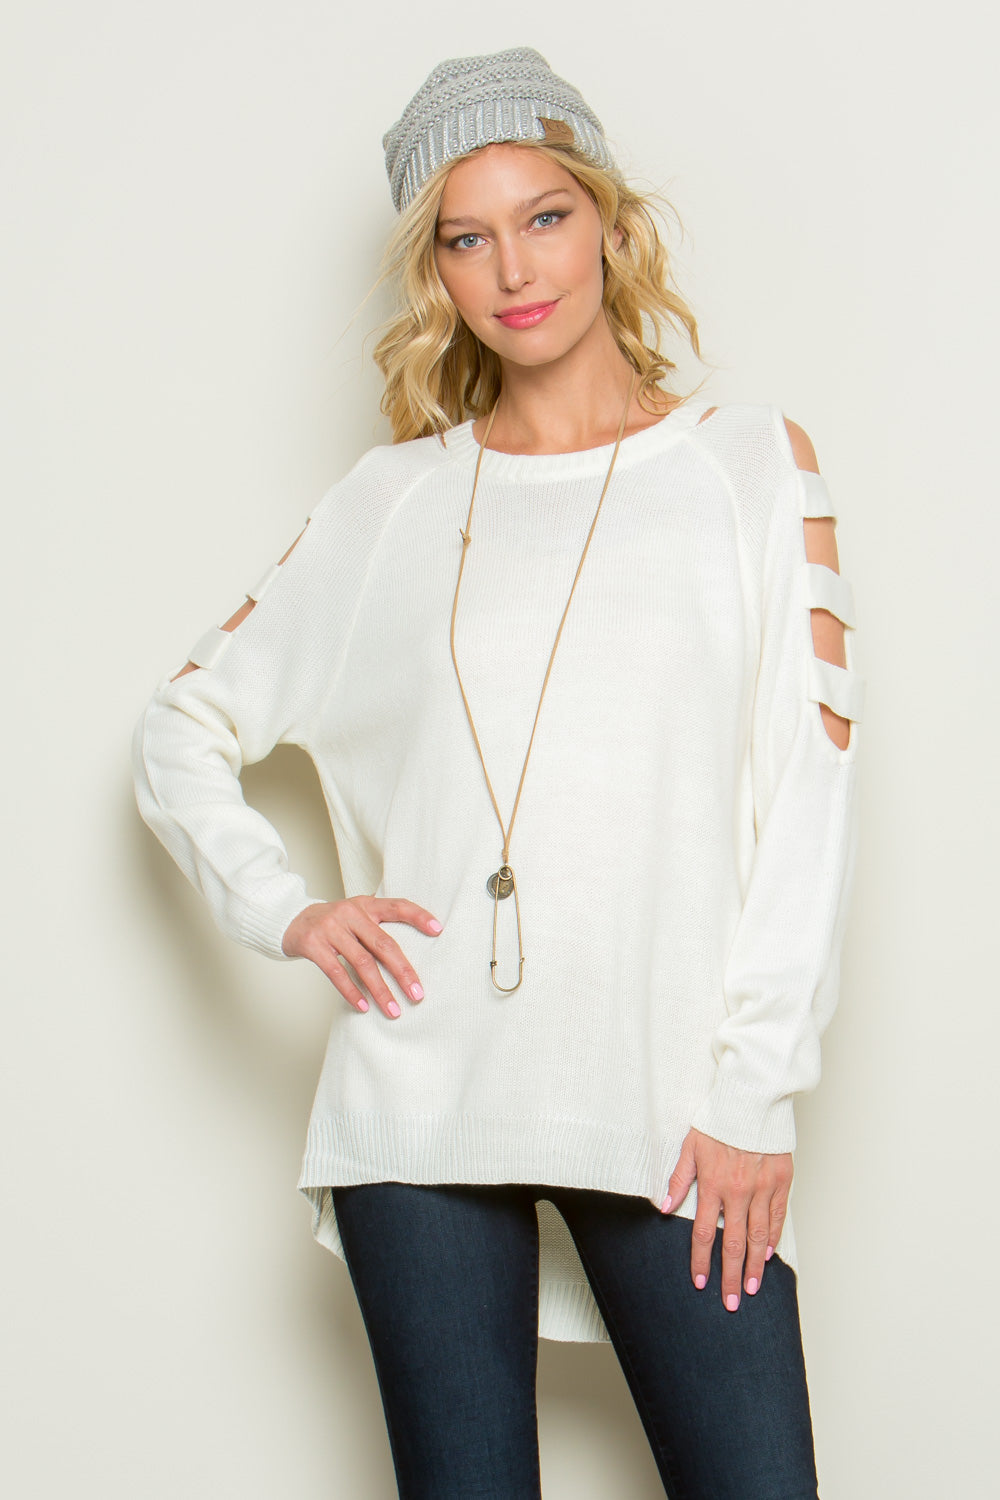 Open Shoulder with Strap Sweater